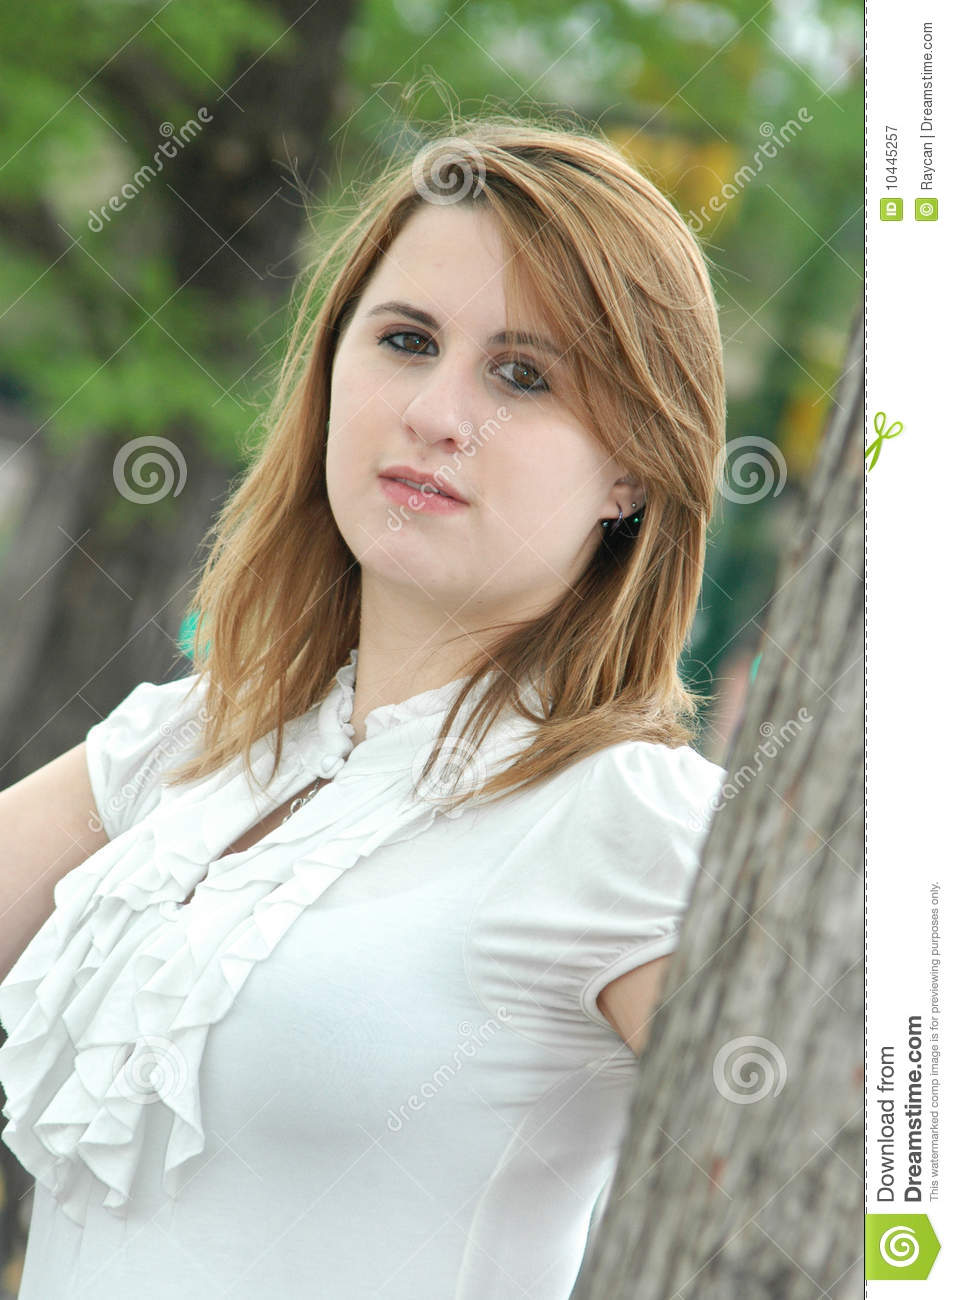 Beautiful Teen Girl Stock Image. Image Of Green, Copy